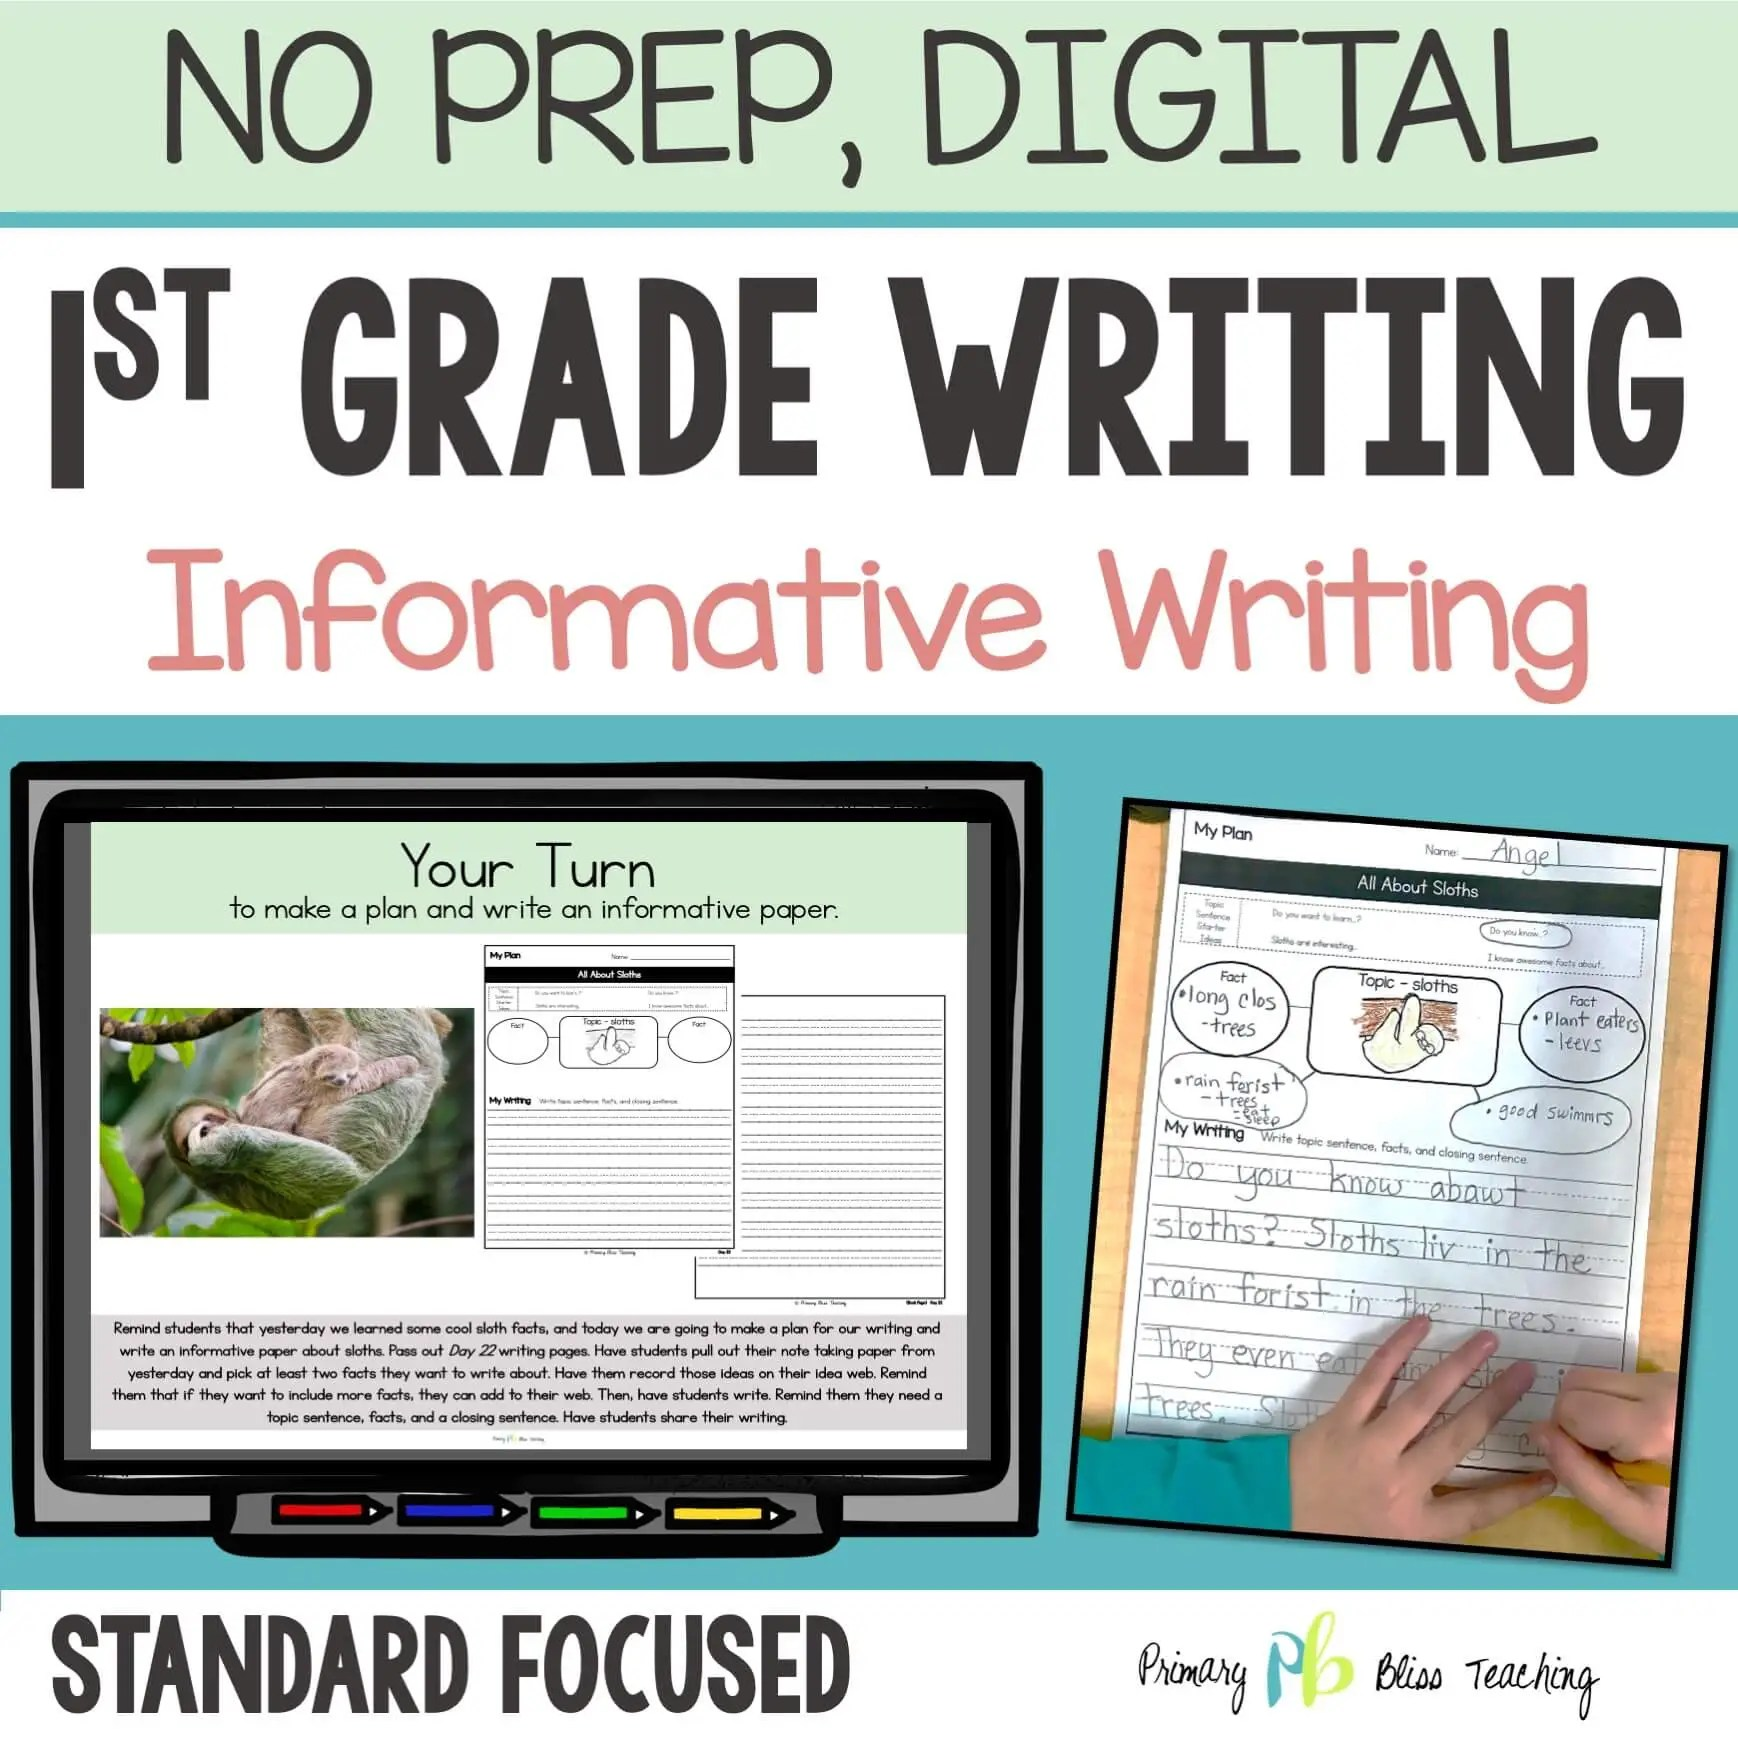 hight resolution of TEACHING INFORMATIVE WRITING IN FIRST GRADE   Primary Bliss Teaching